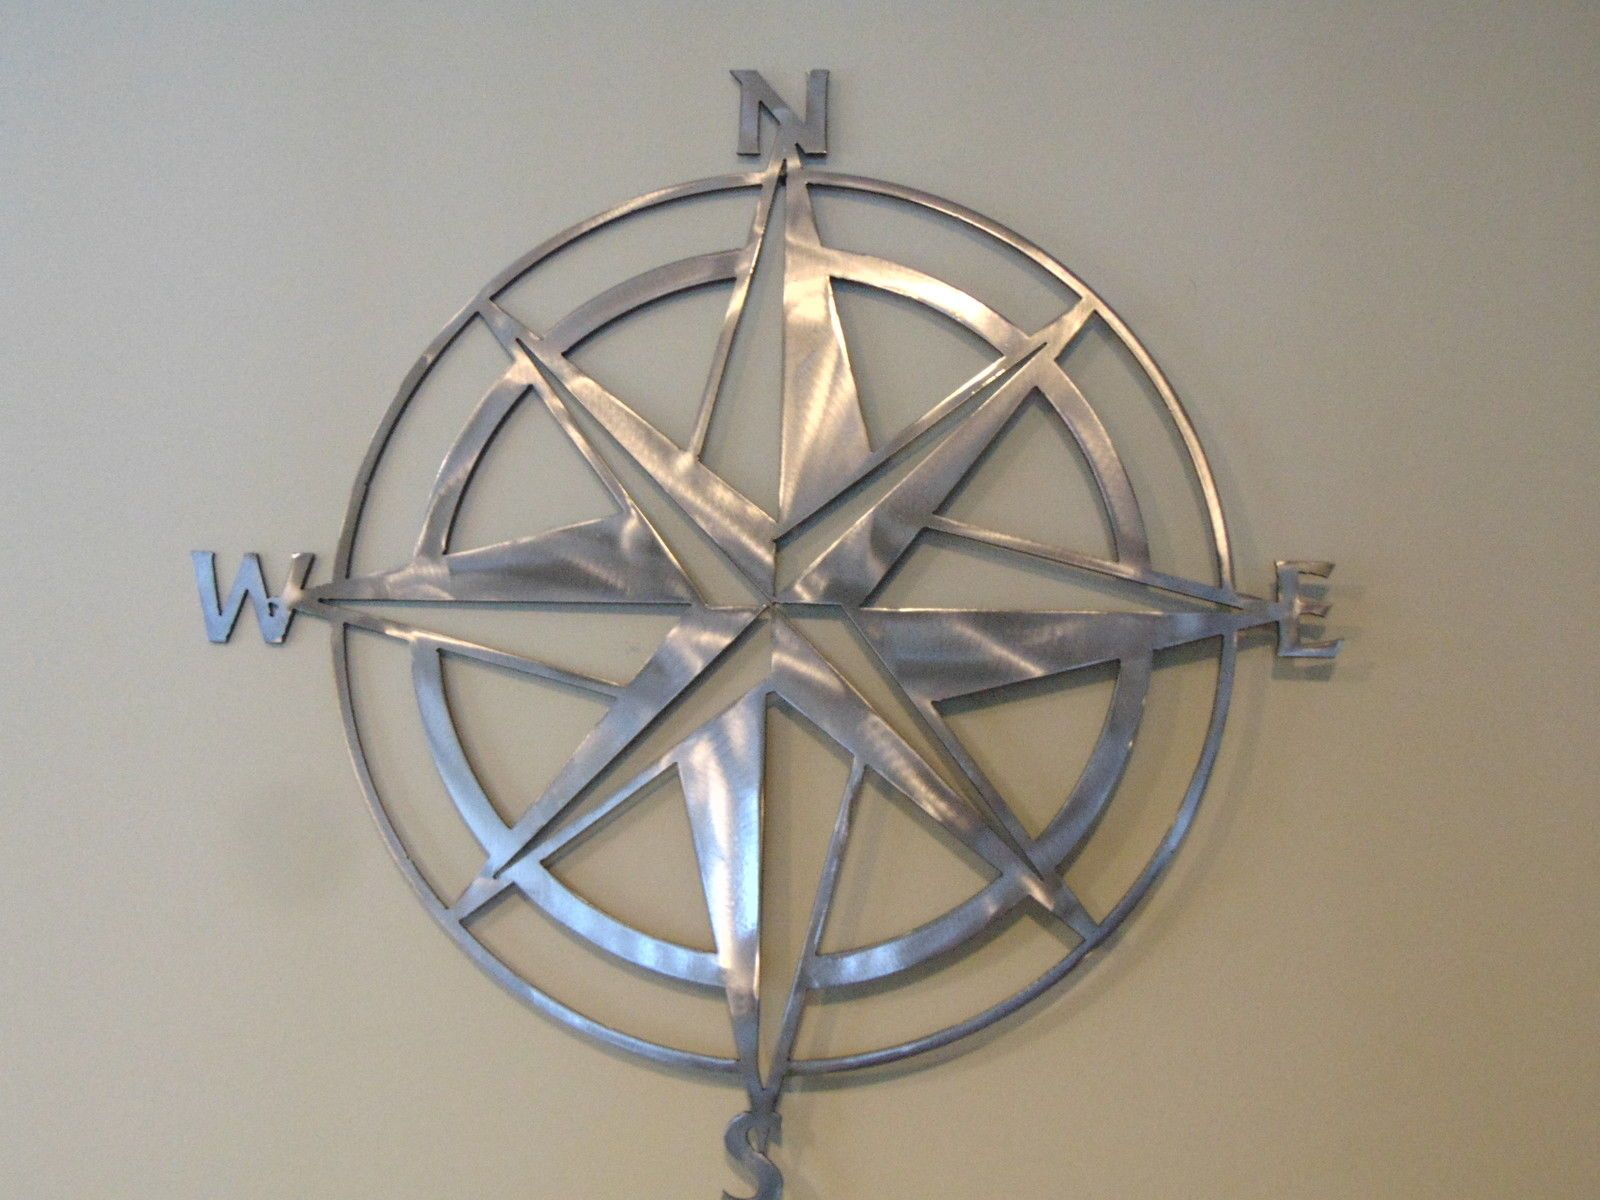 New Nautical Compass Rose Wall Art Home Decor 22 X 22 By